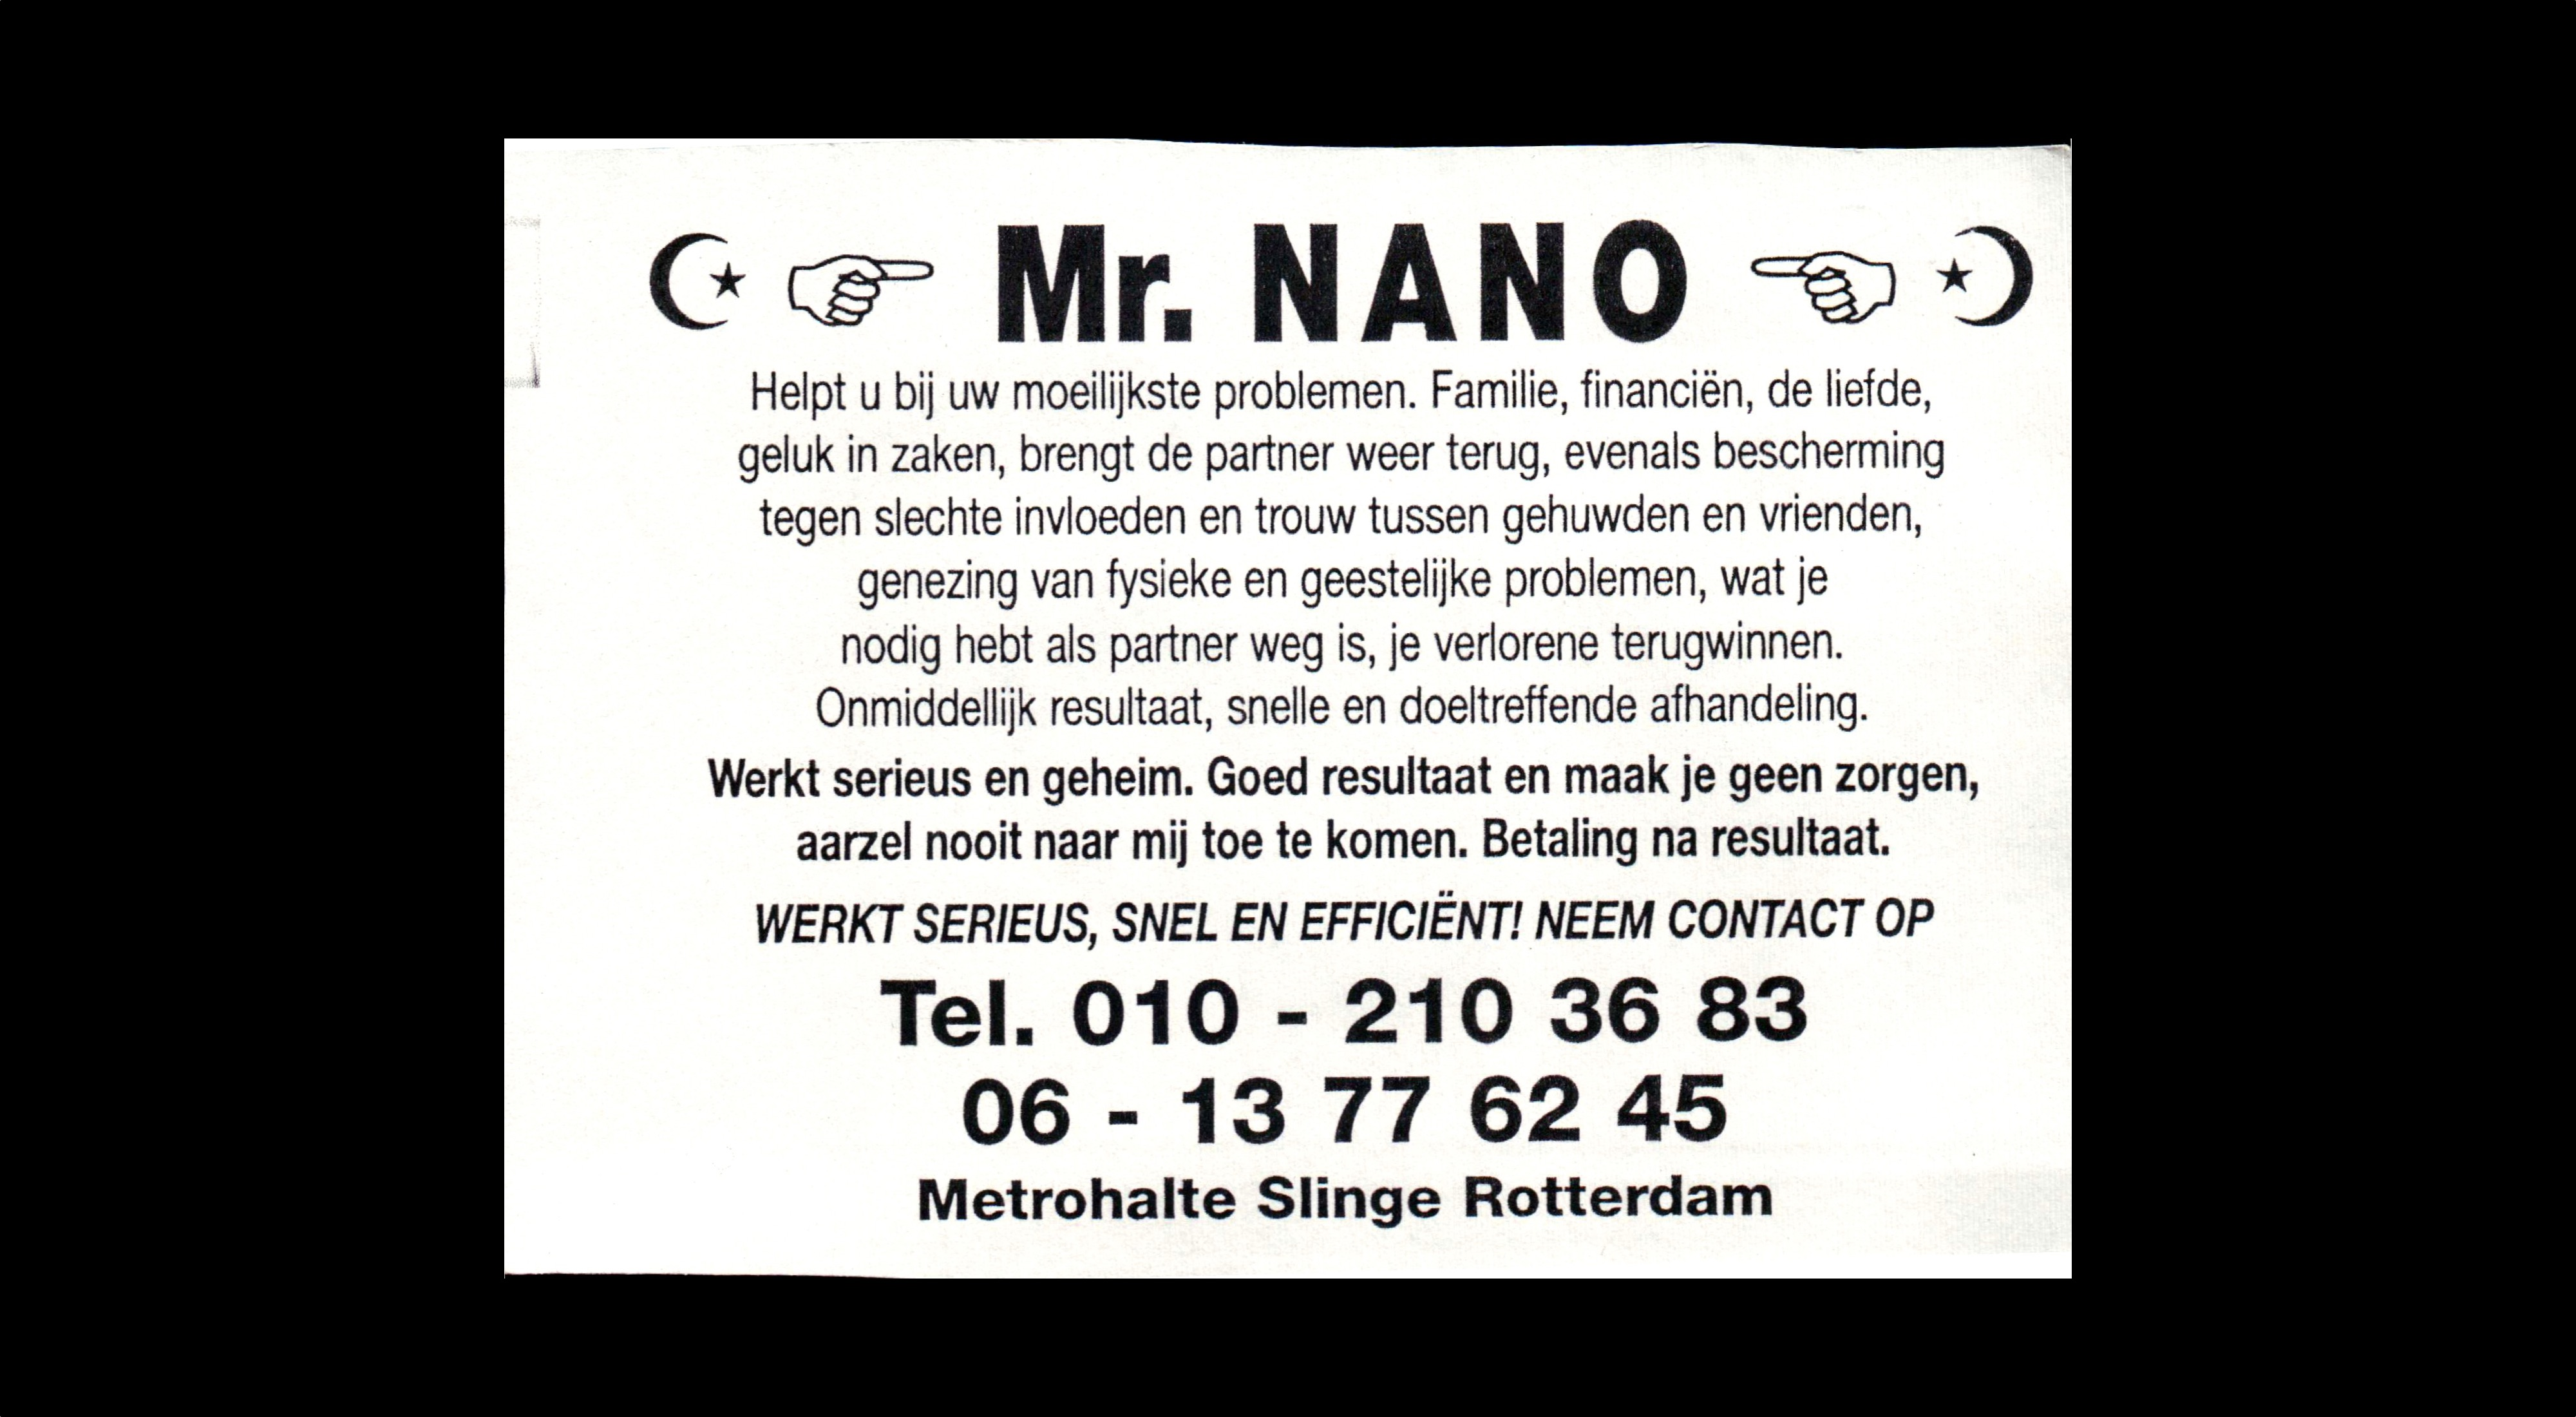 card of Mr. NANO